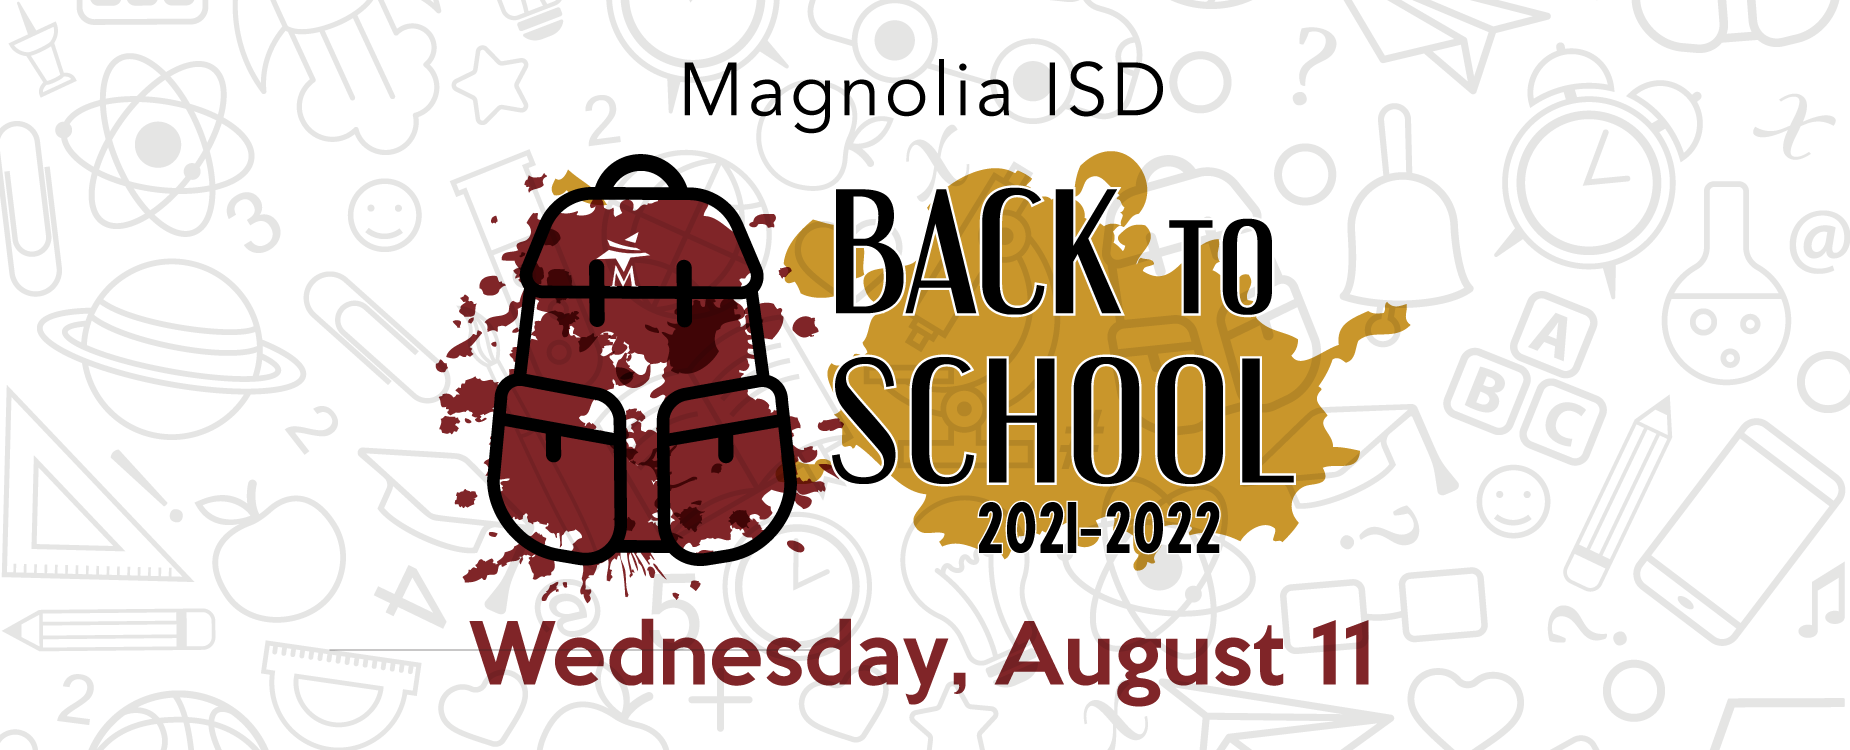 Back to school August 11